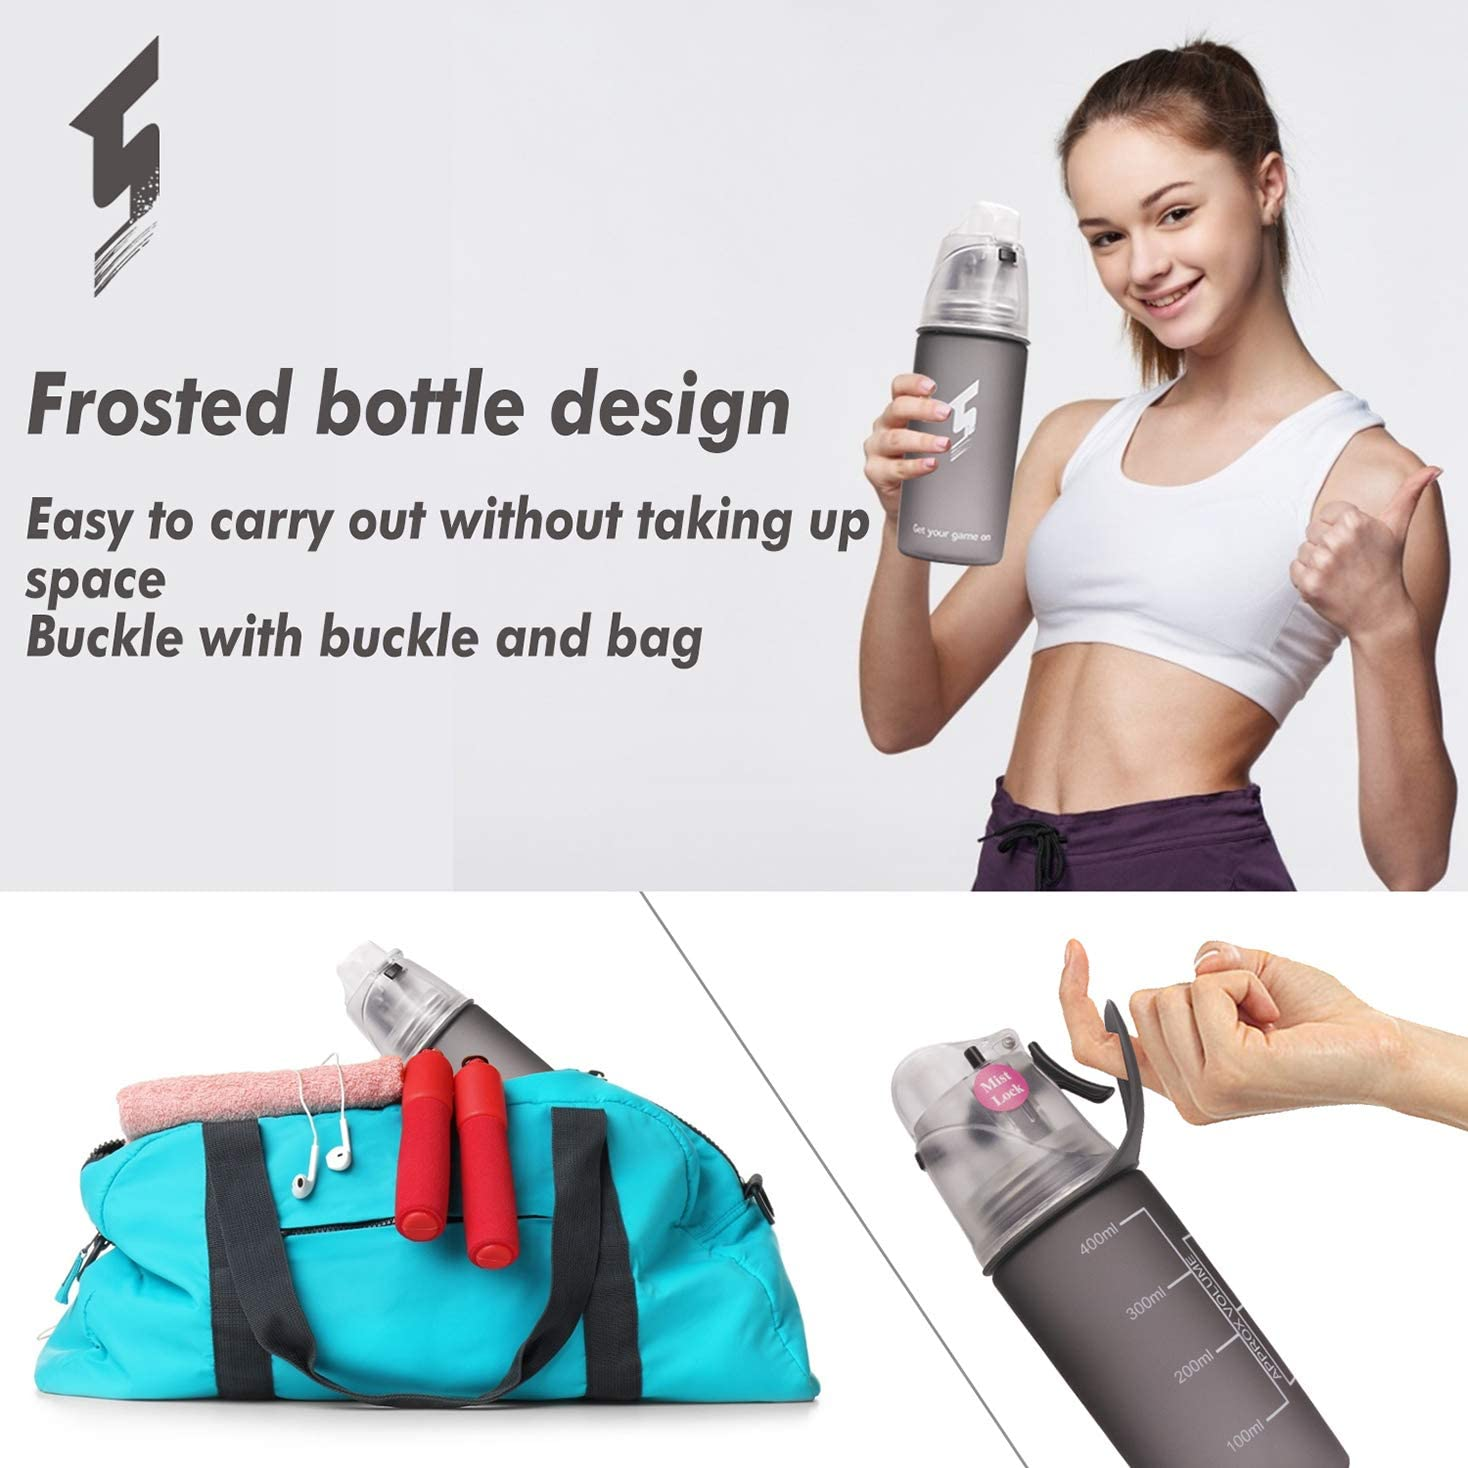 NOVOs Drinking and Misting Sports Water Bottle Portable Leak-Proof Spray Cup for Cycling Fitness Camping Hiking Outdoor Non-Toxic BPA Free Fast Water Flow Opens with 1-Click